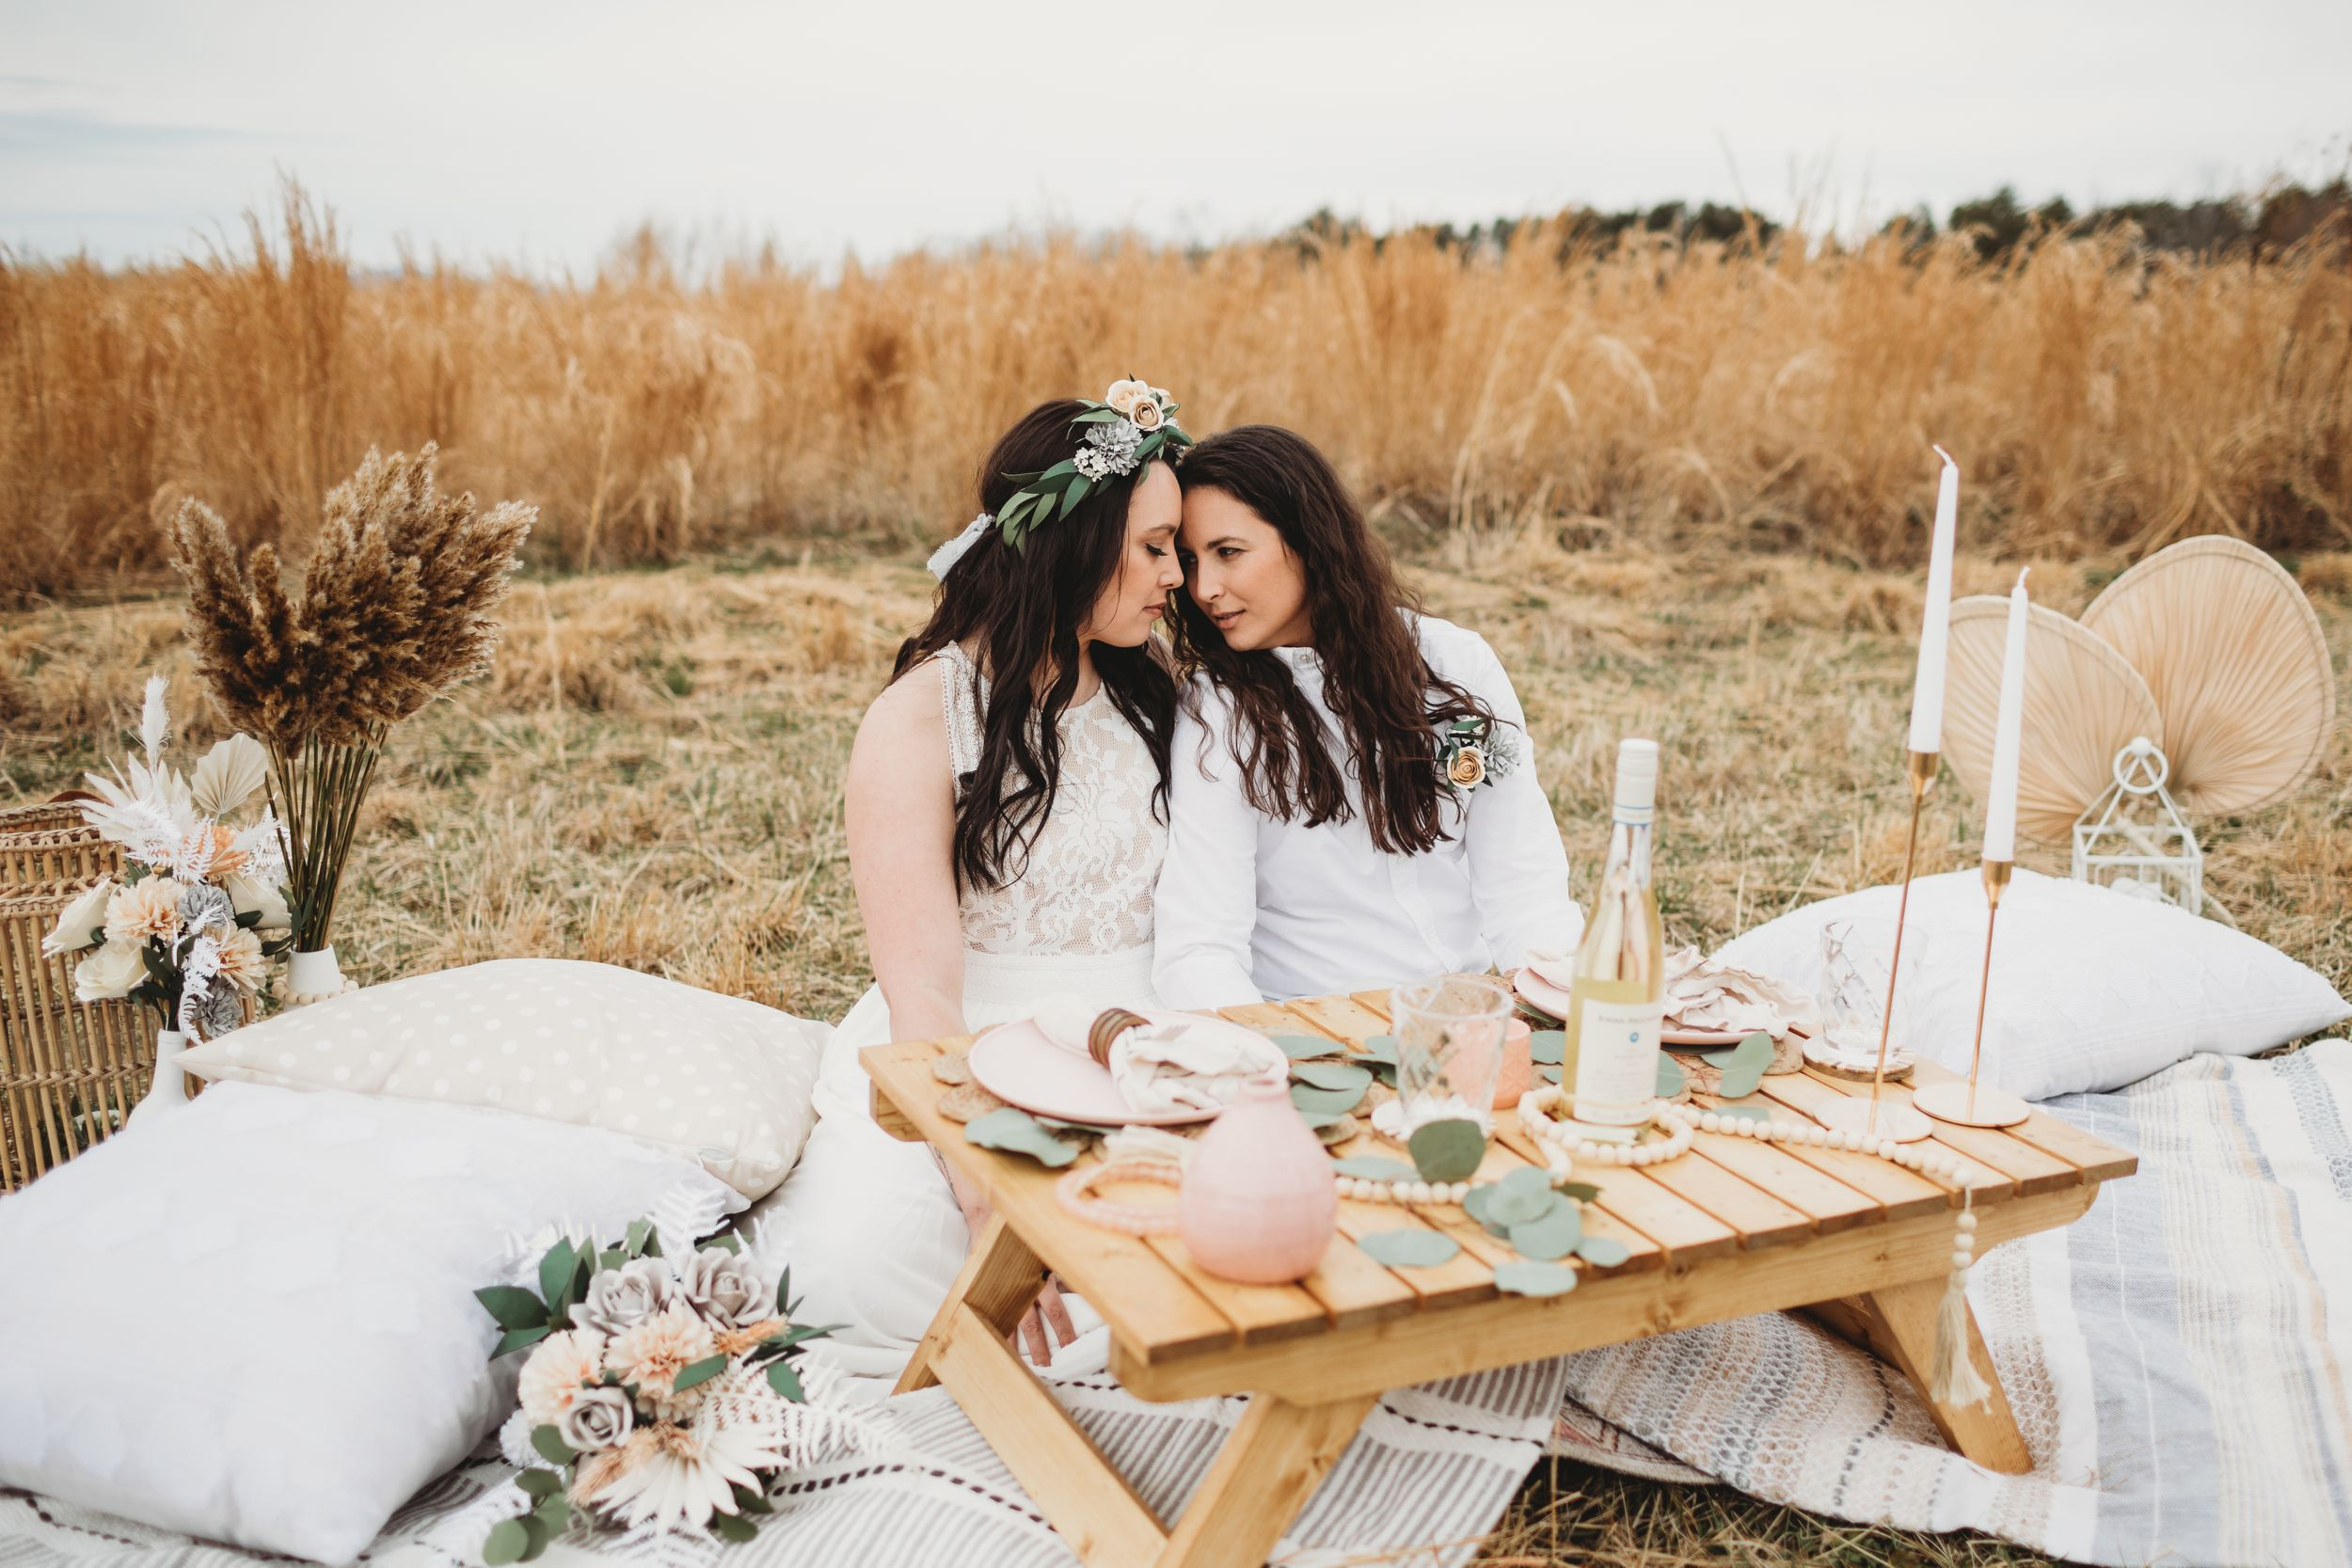 Choosing between a big wedding and a small wedding or elopement: pros and cons of each